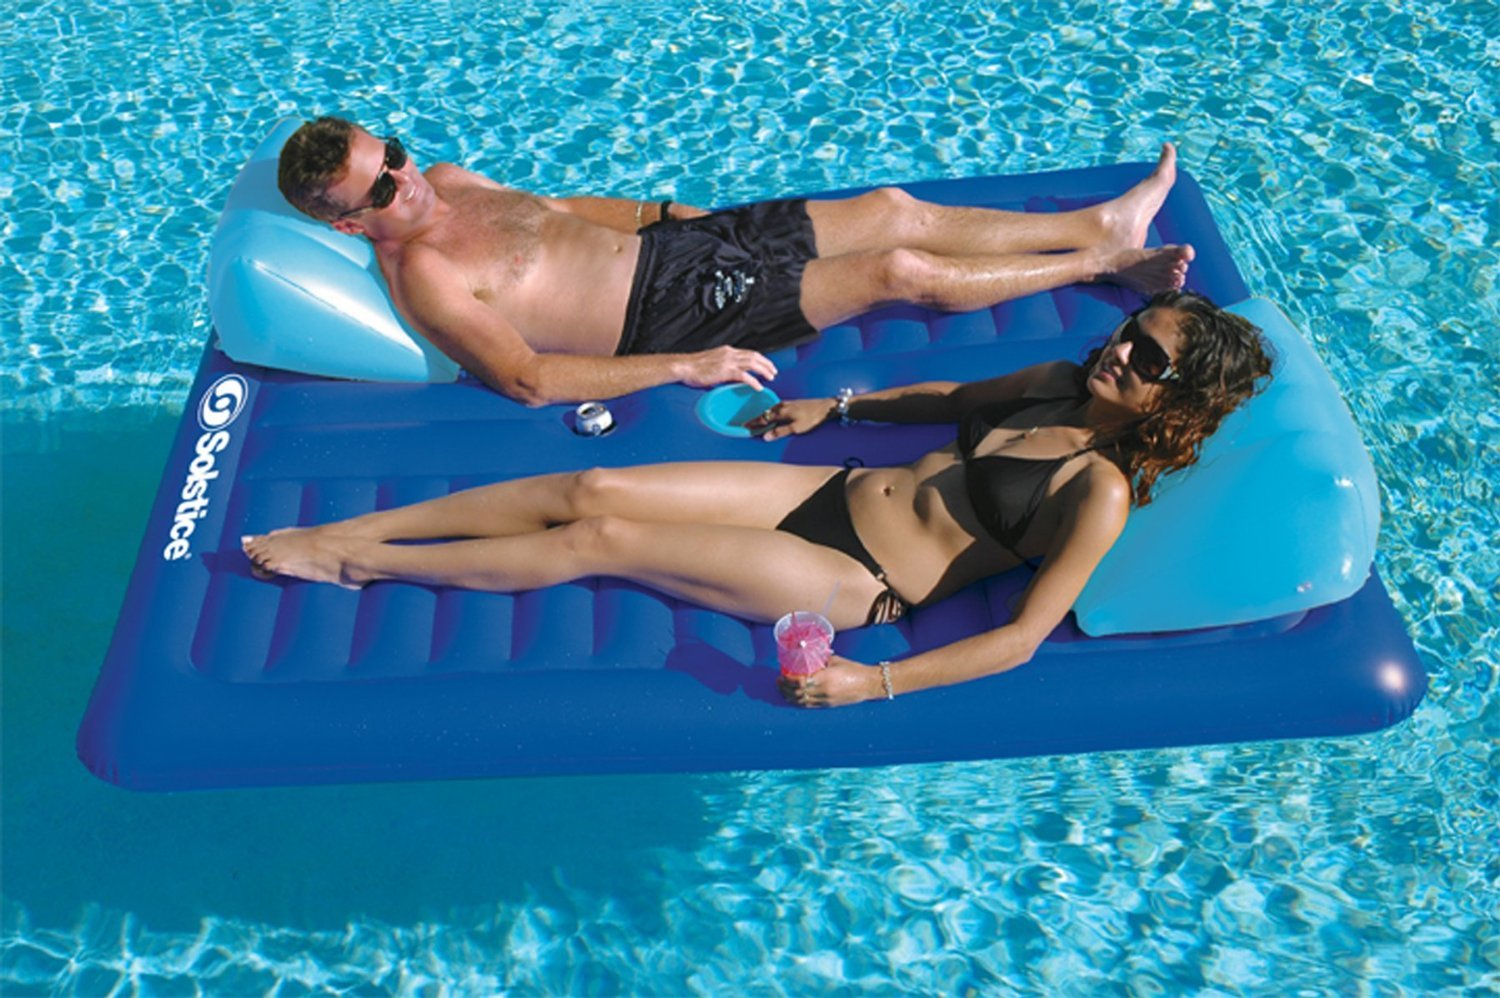 Swimming Pool Float Floating Mattress Inflatable Lounger 2 Person Unique Design Floats Rafts